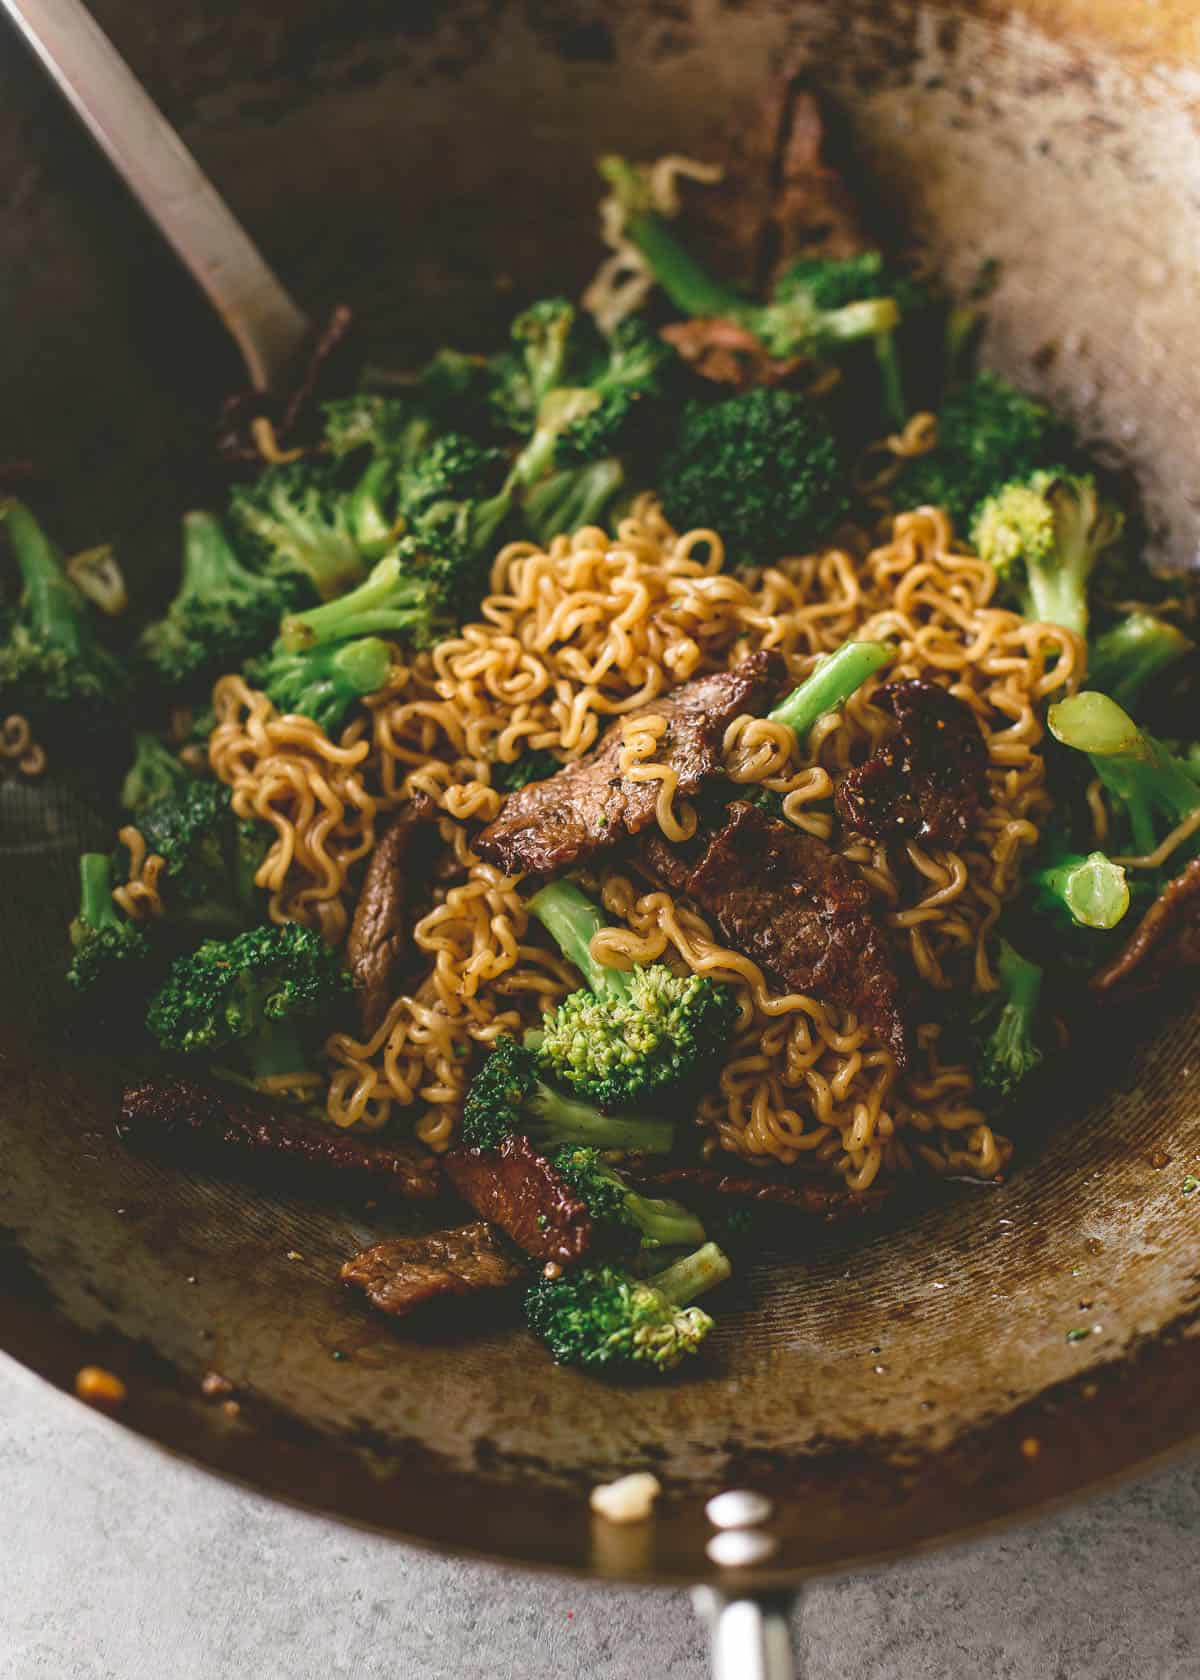 mixing steak and cooked broccoli in a wok